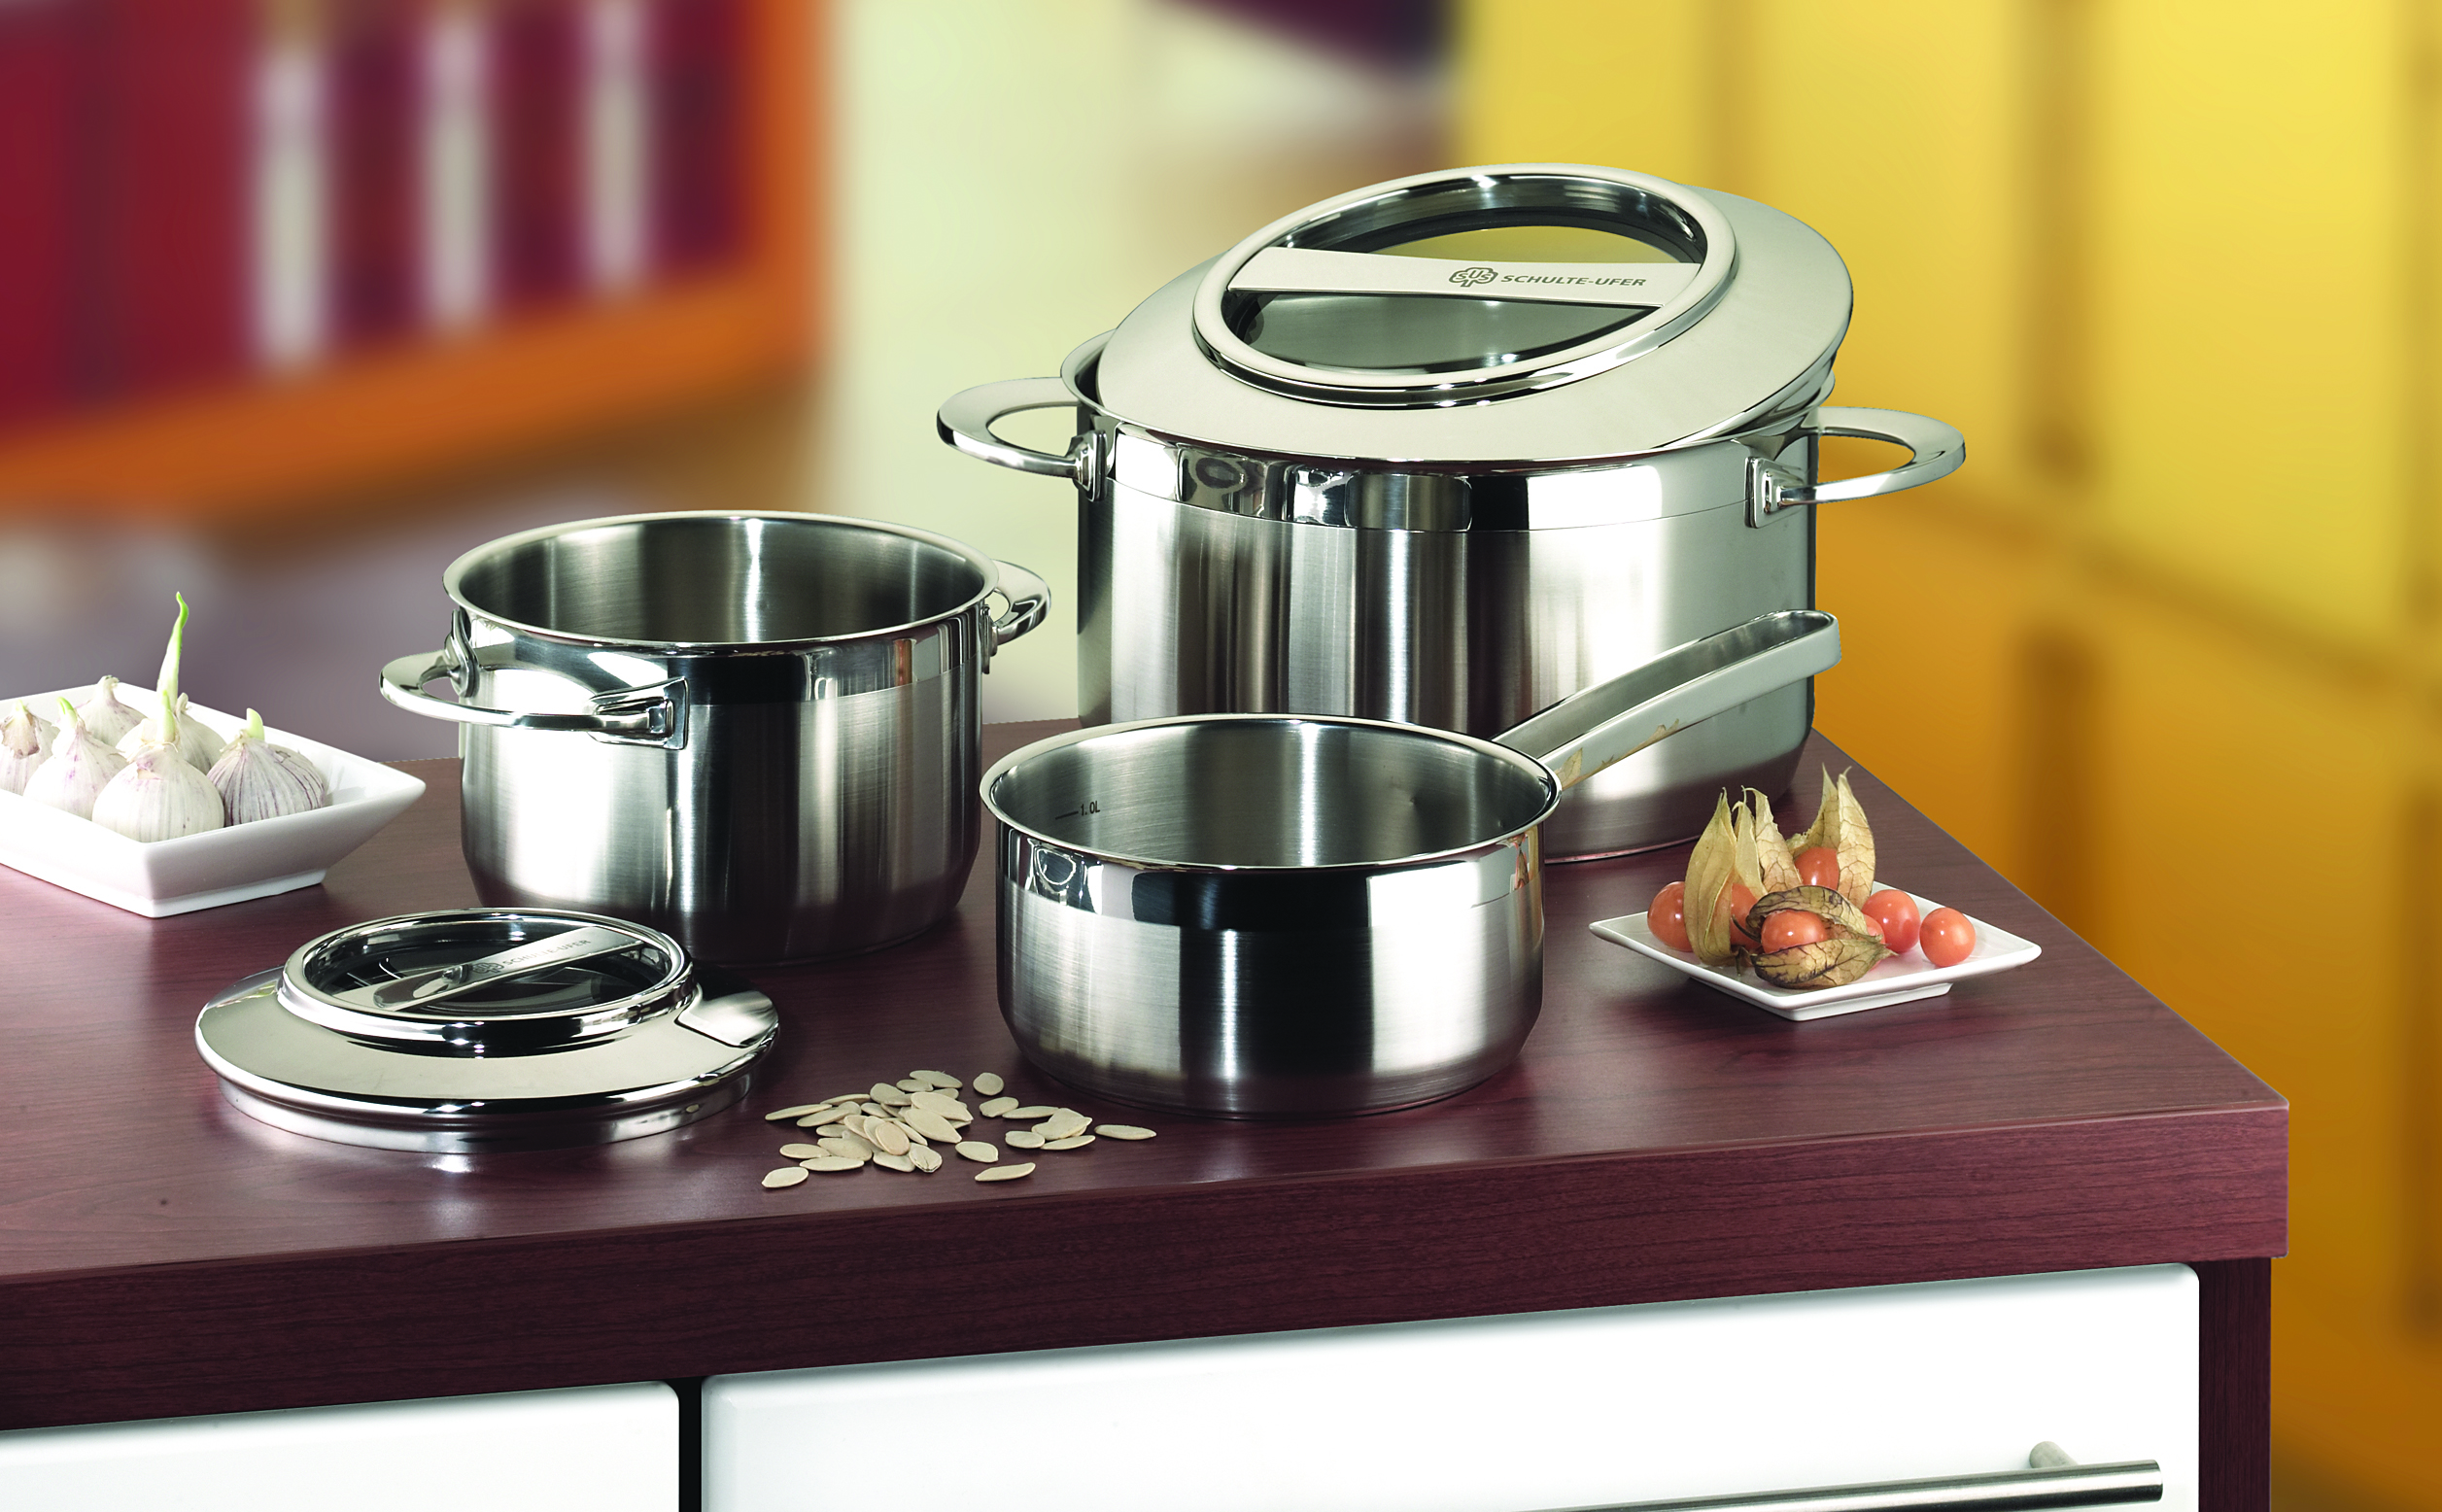 Schulte-Ufer Stainless Steel Pot Sets - North York ON